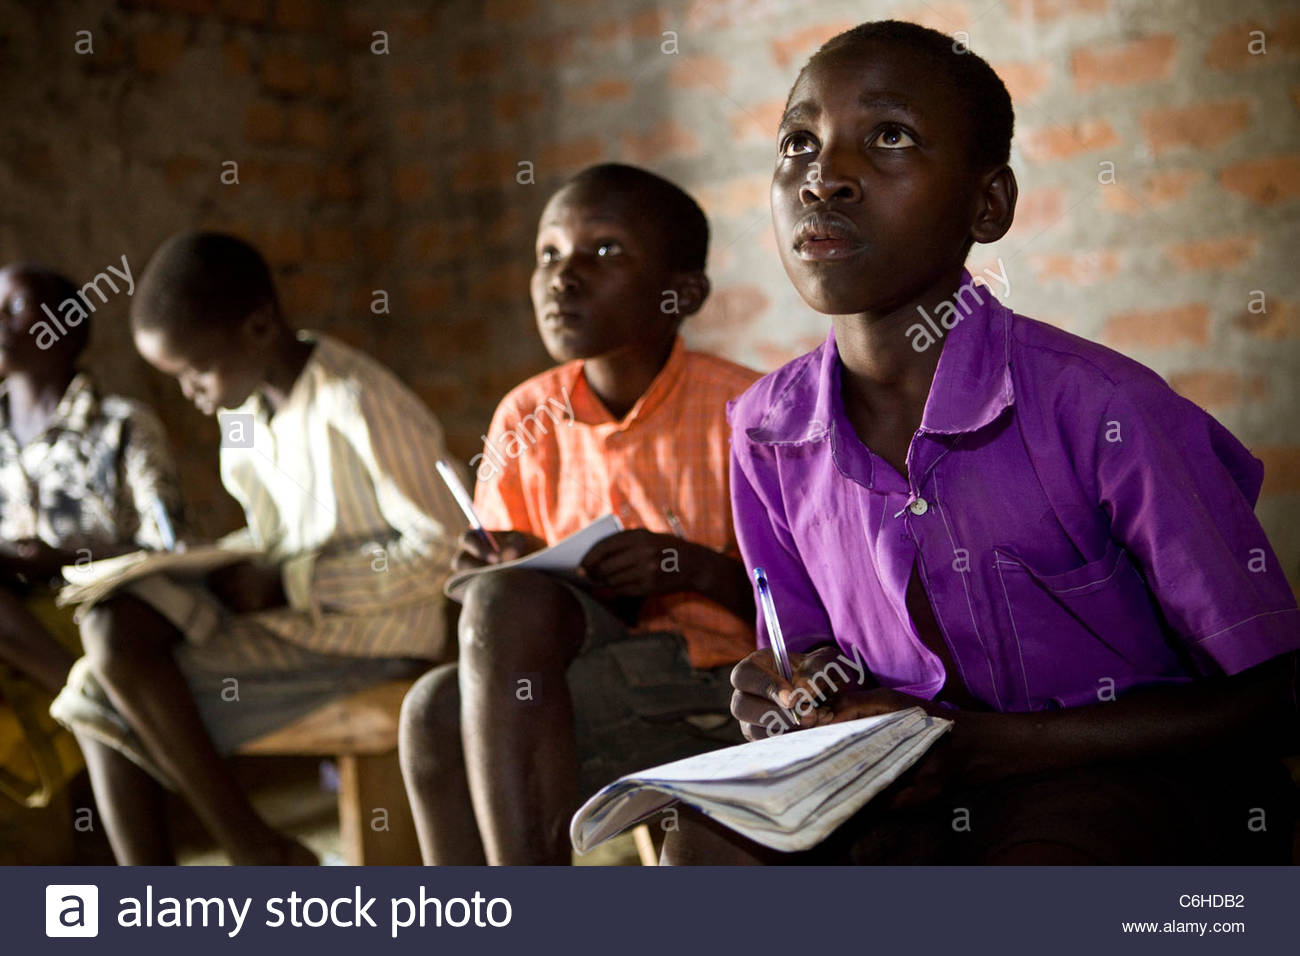 Primary school children writing into notebooks on their laps in a bare classroom - Stock Image